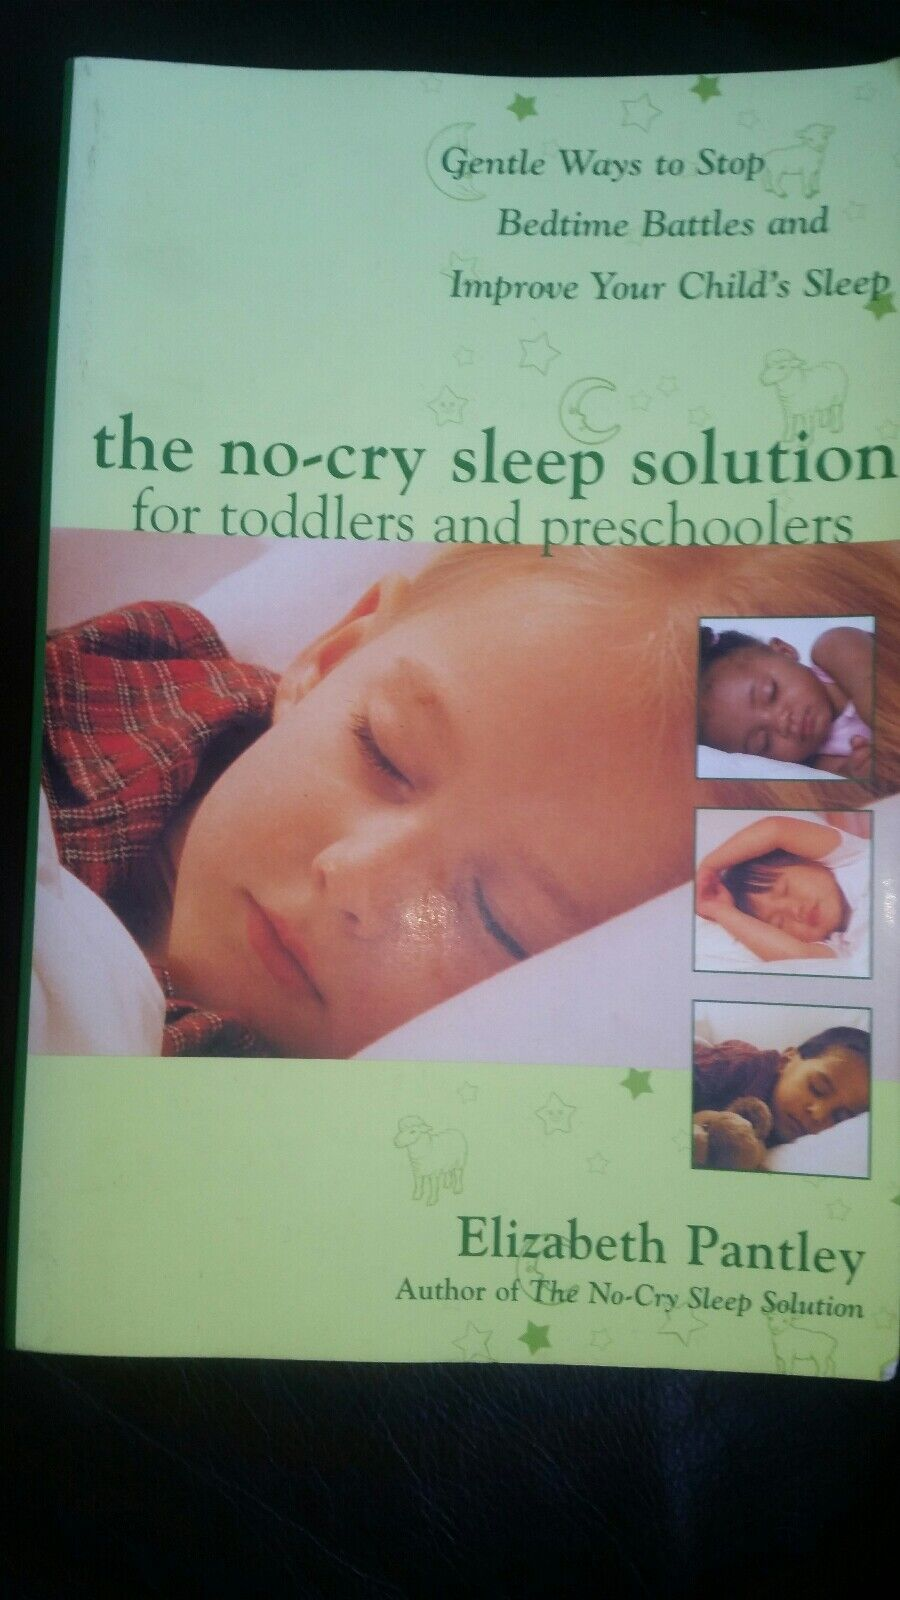 a7a7b28507a7b8 The No-Cry Sleep Solution for Toddlers and Preschoolers: Gentle Ways to  Stop Bedtime Battles and Improve Your Child's Sleep: Foreword by Dr. Harvey  Karp by ...